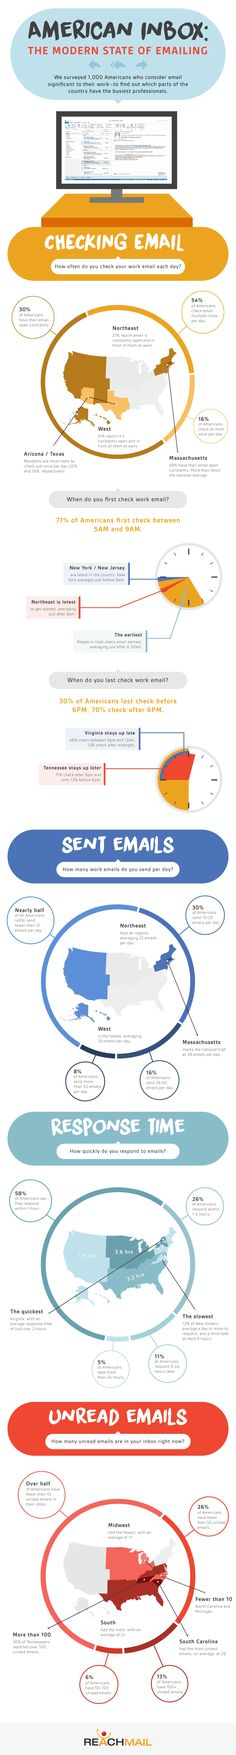 American Inbox: The Modern State of Emailing In the Workplace | The Marketing Eggspert Blog